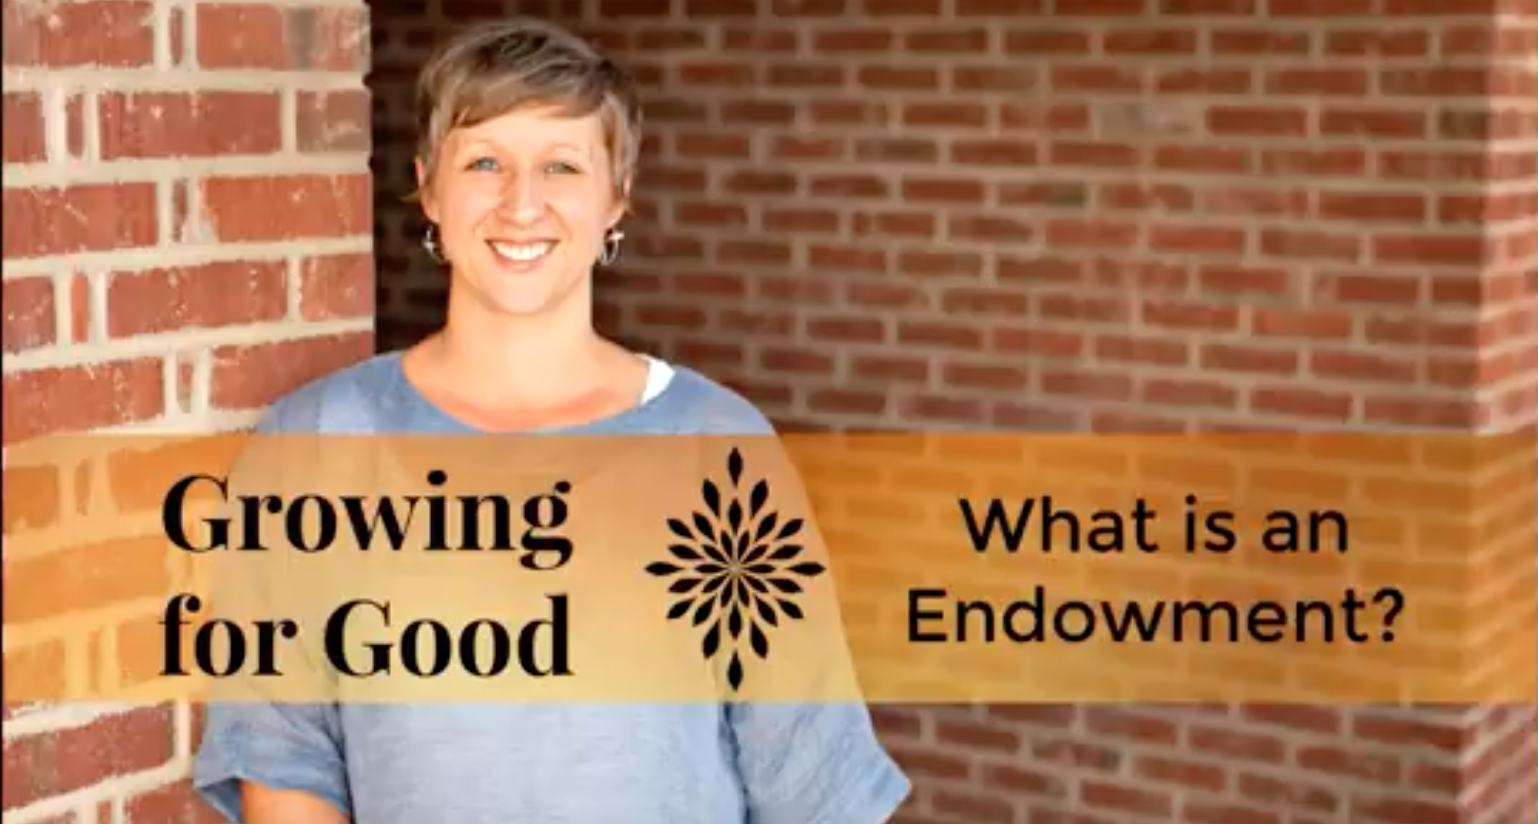 What is an Endowment?